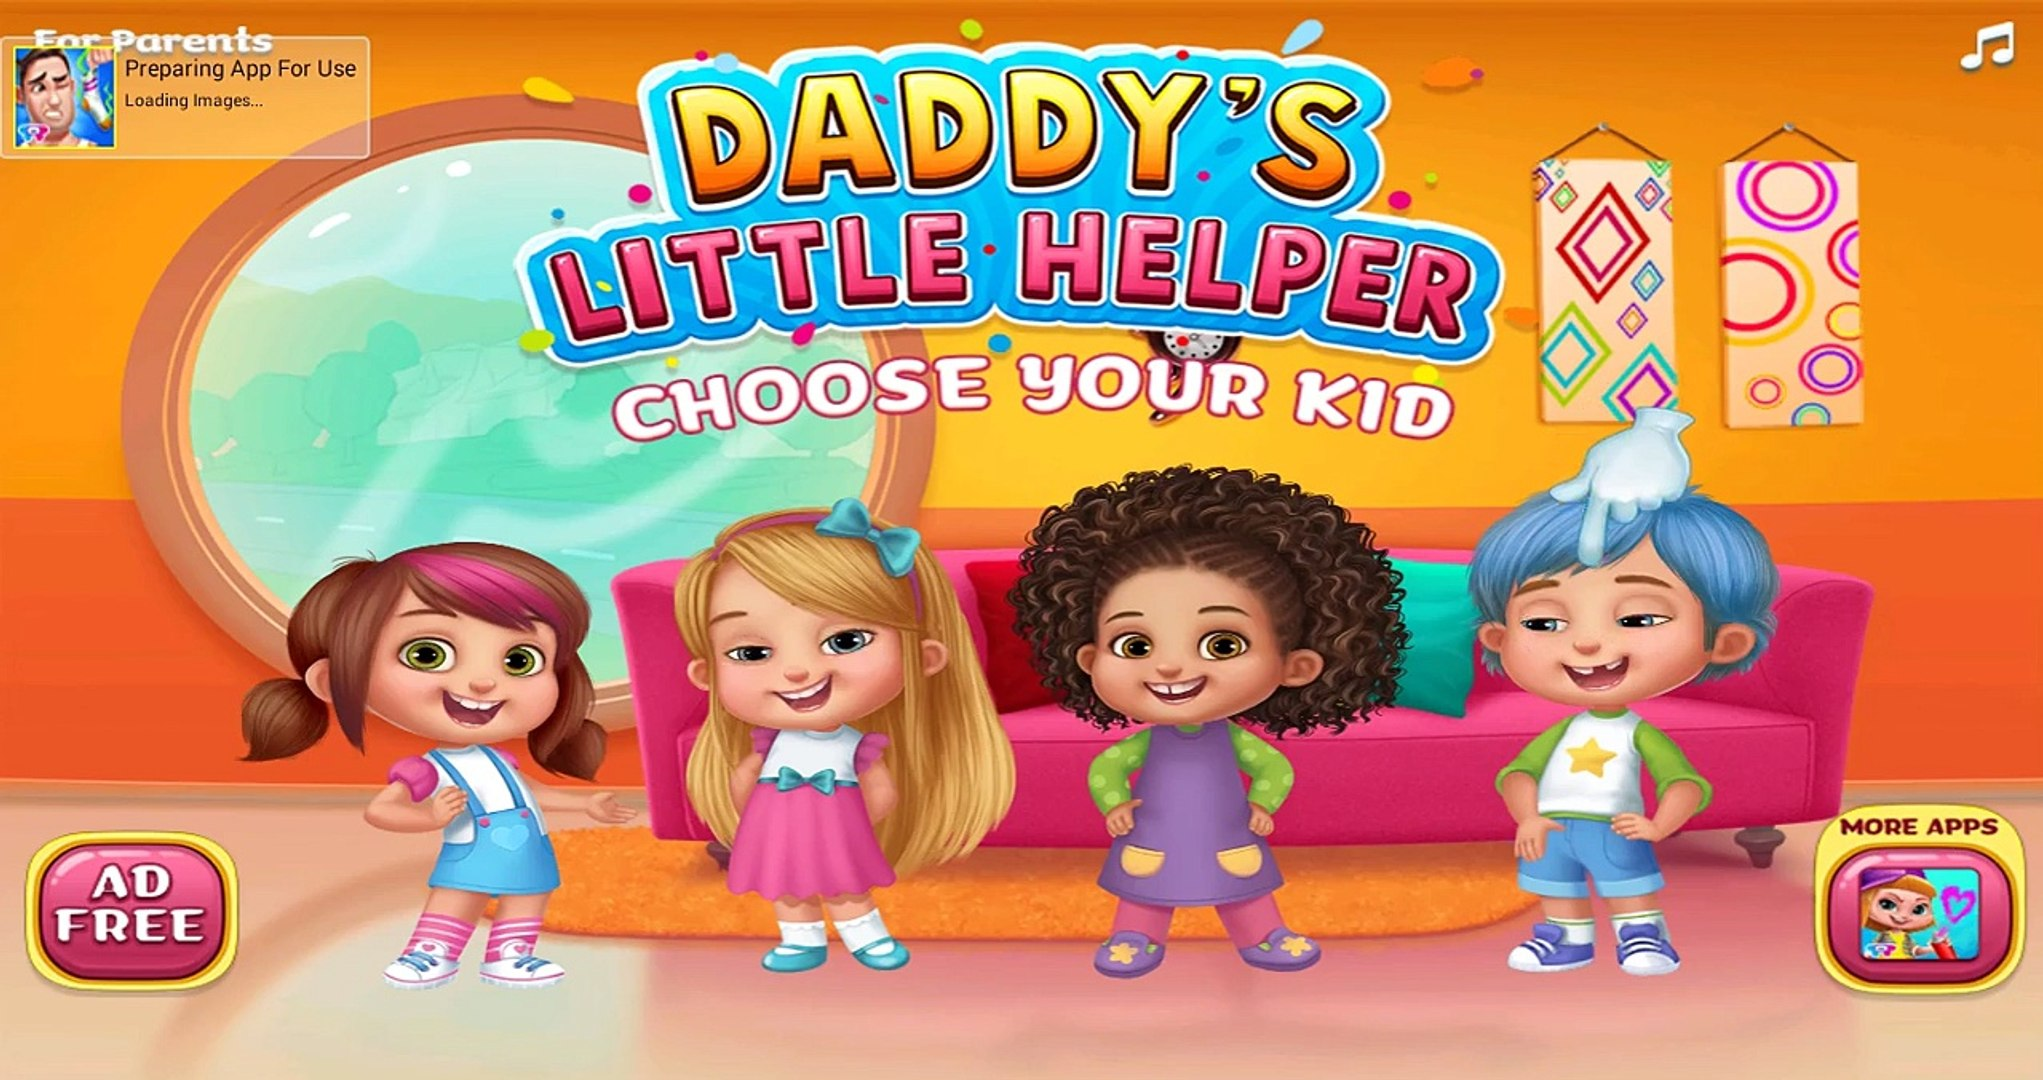 Kids Home Activities - Daddys Little Helper Fun Care Games for Kids & Family